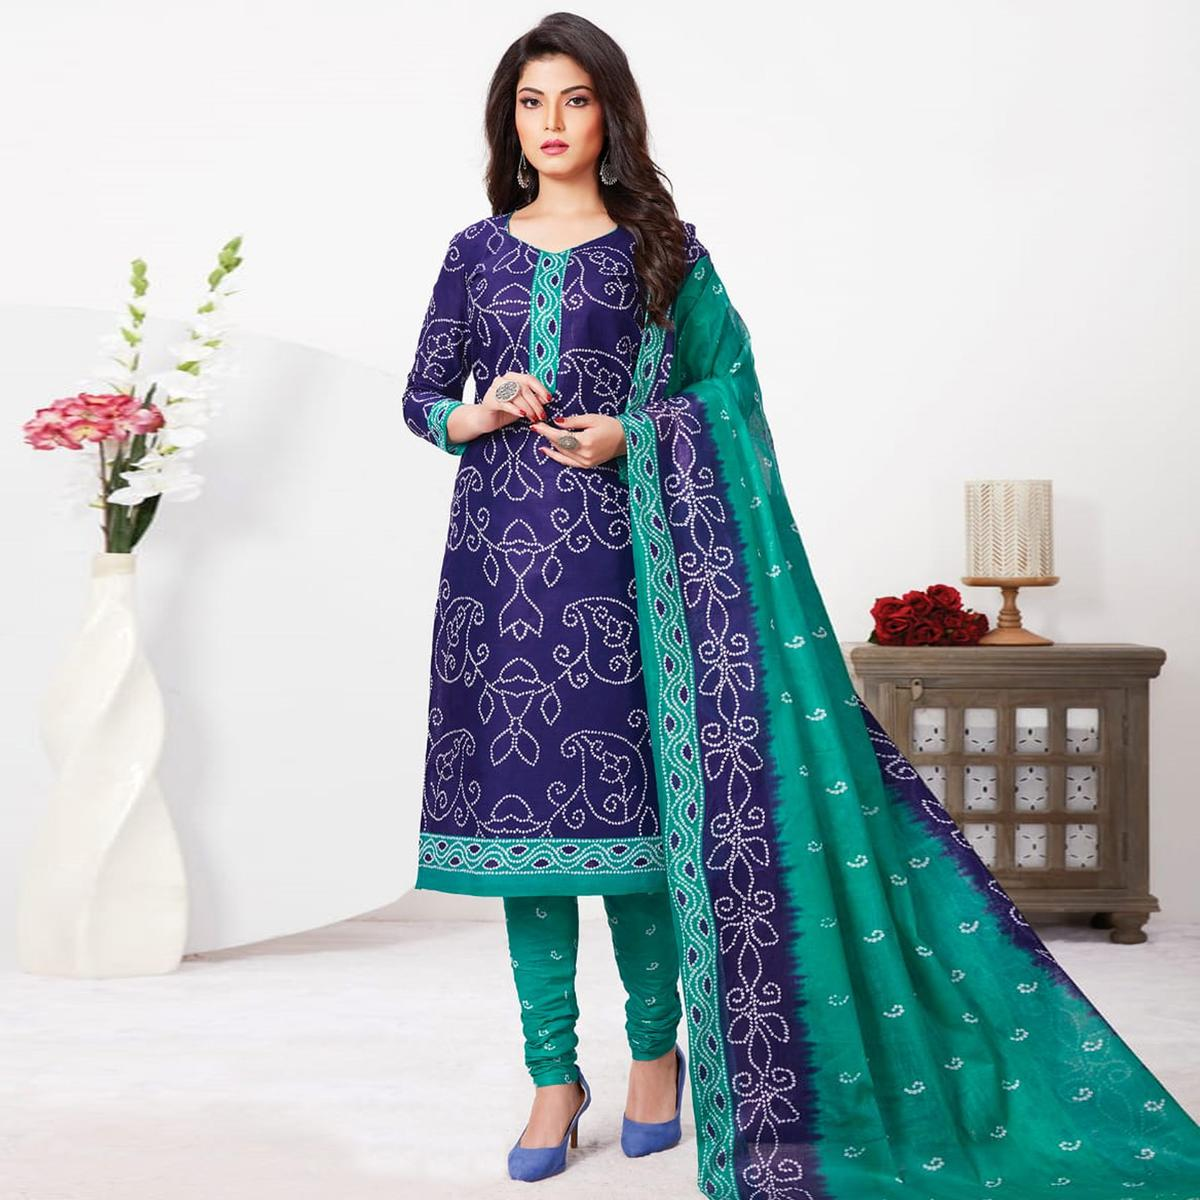 Refreshing Navy Blue Colored Casual Wear Bandhani Printed Pure Cotton Dress Material